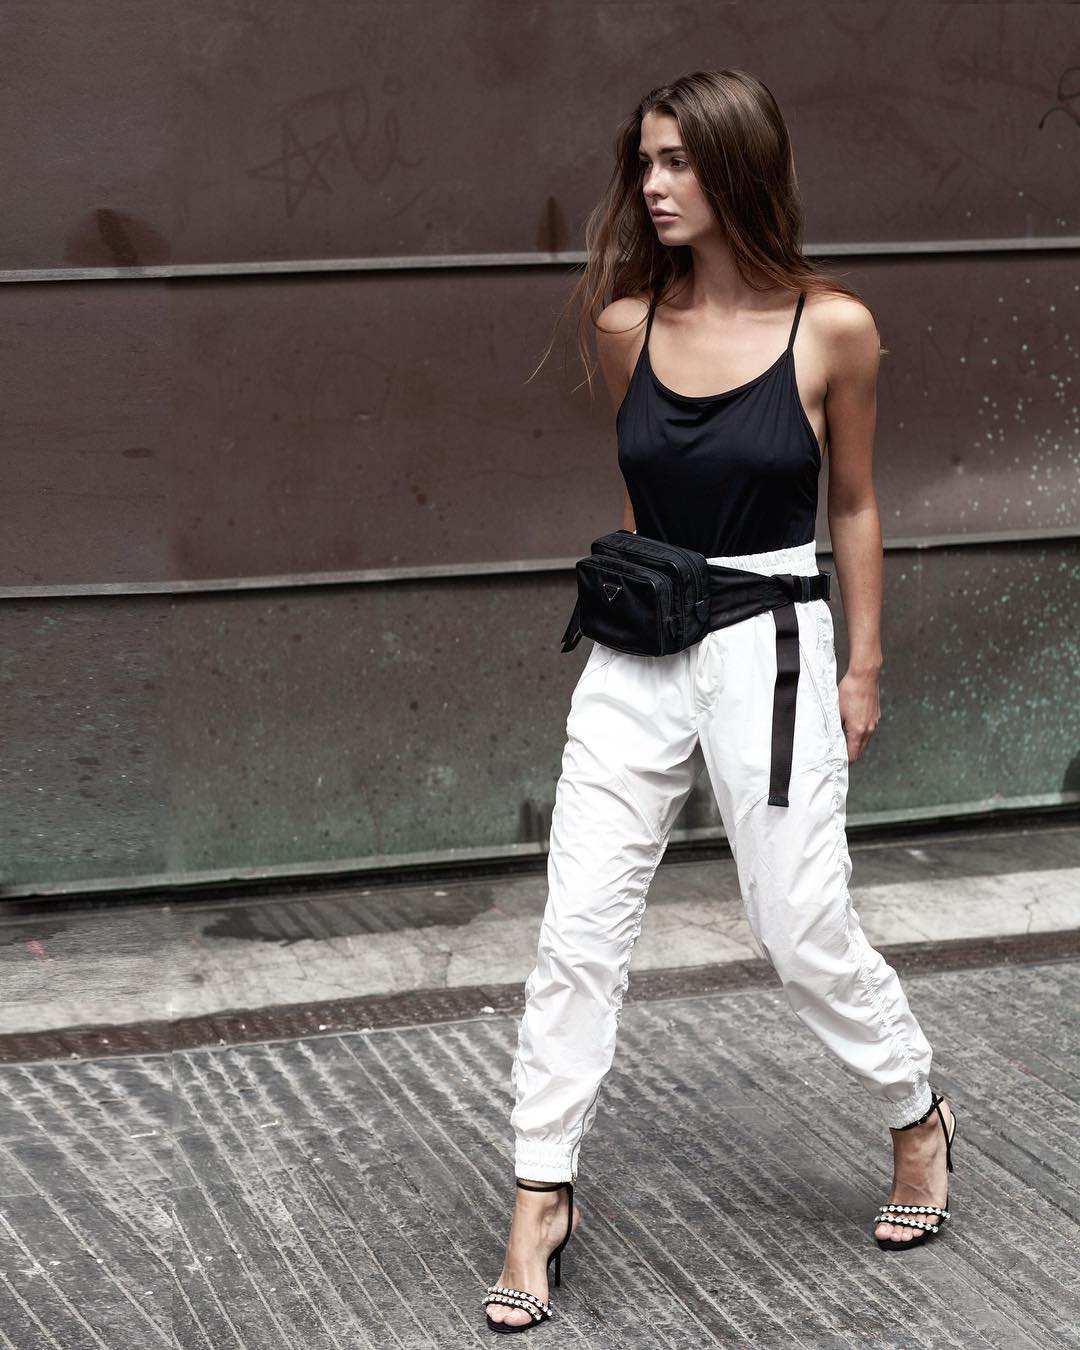 sophia-roe-isabel-marant-shell-track-pants-outfit-instagram